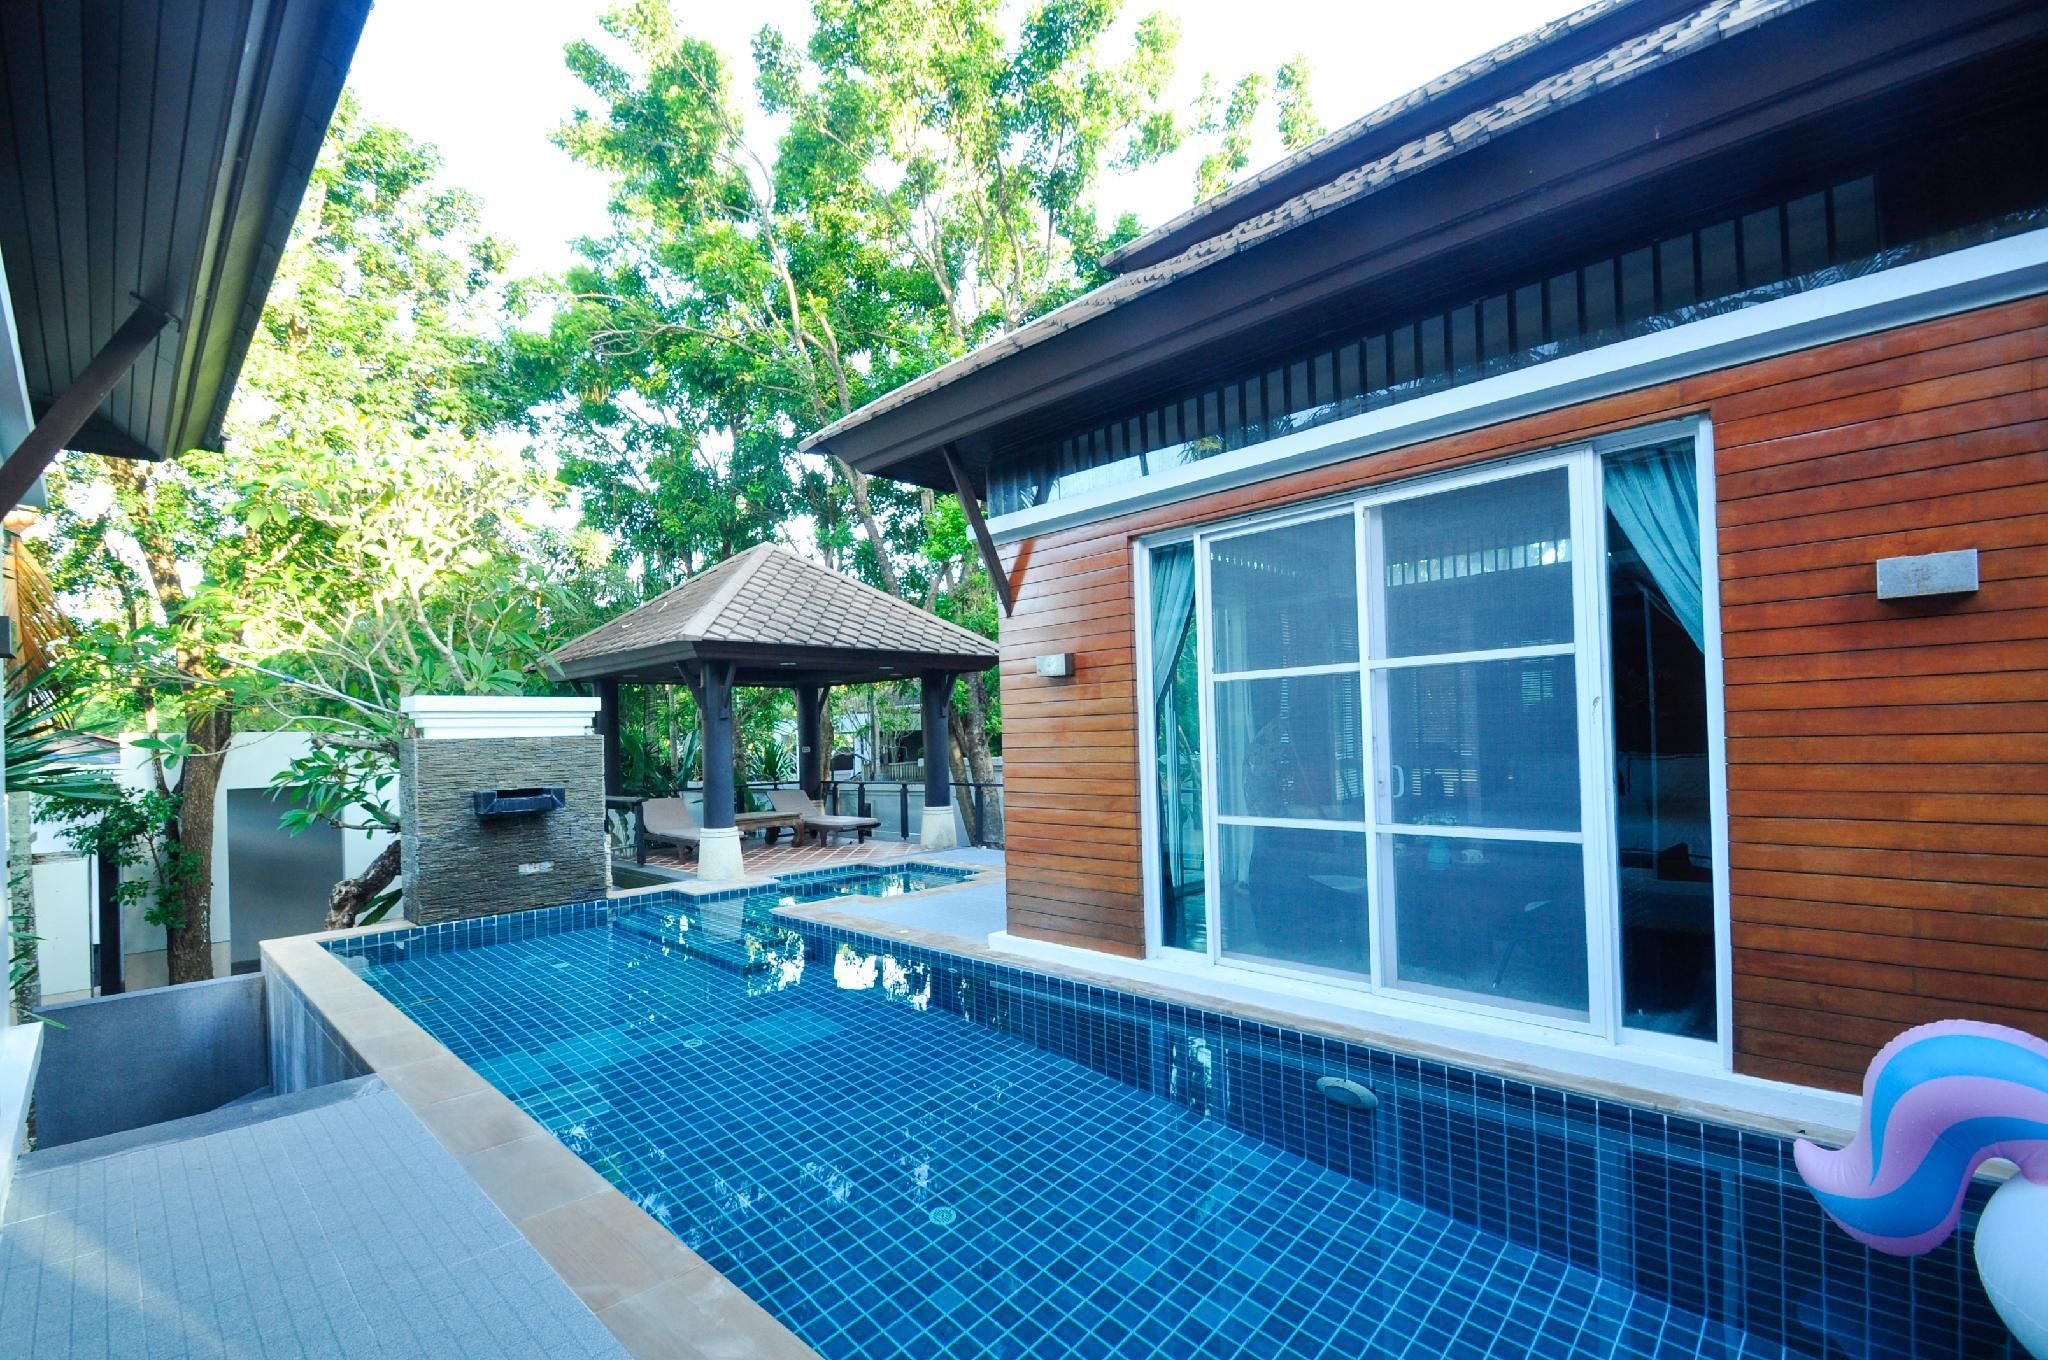 3 Bedroom Pool Villa at rawai beach, Phuket Island 3 Bedroom Pool Villa at rawai beach, Phuket Island